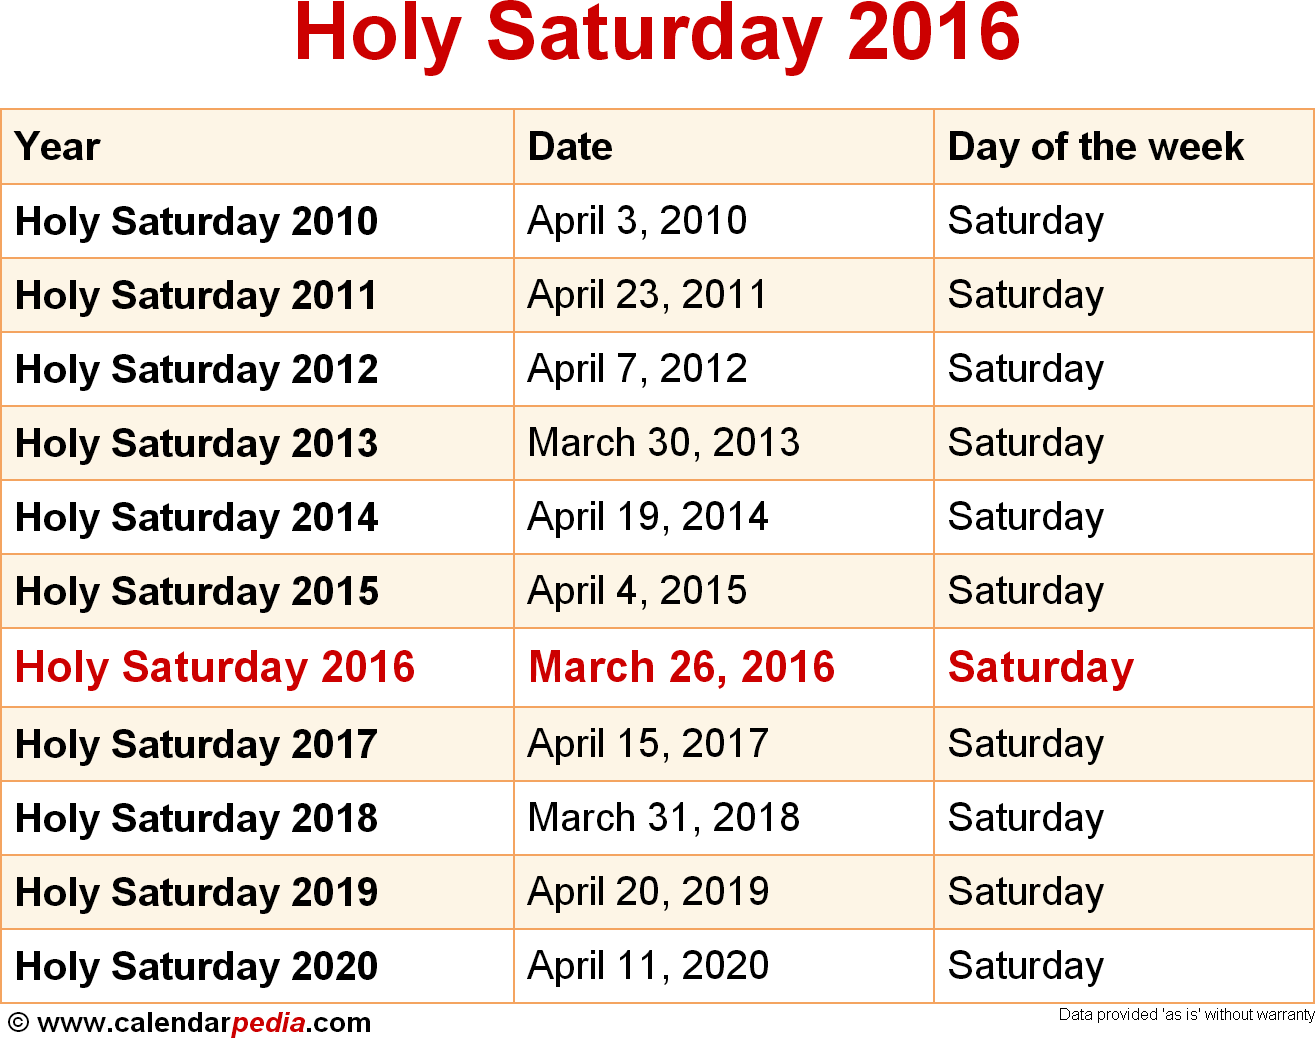 Holy Saturday 2016